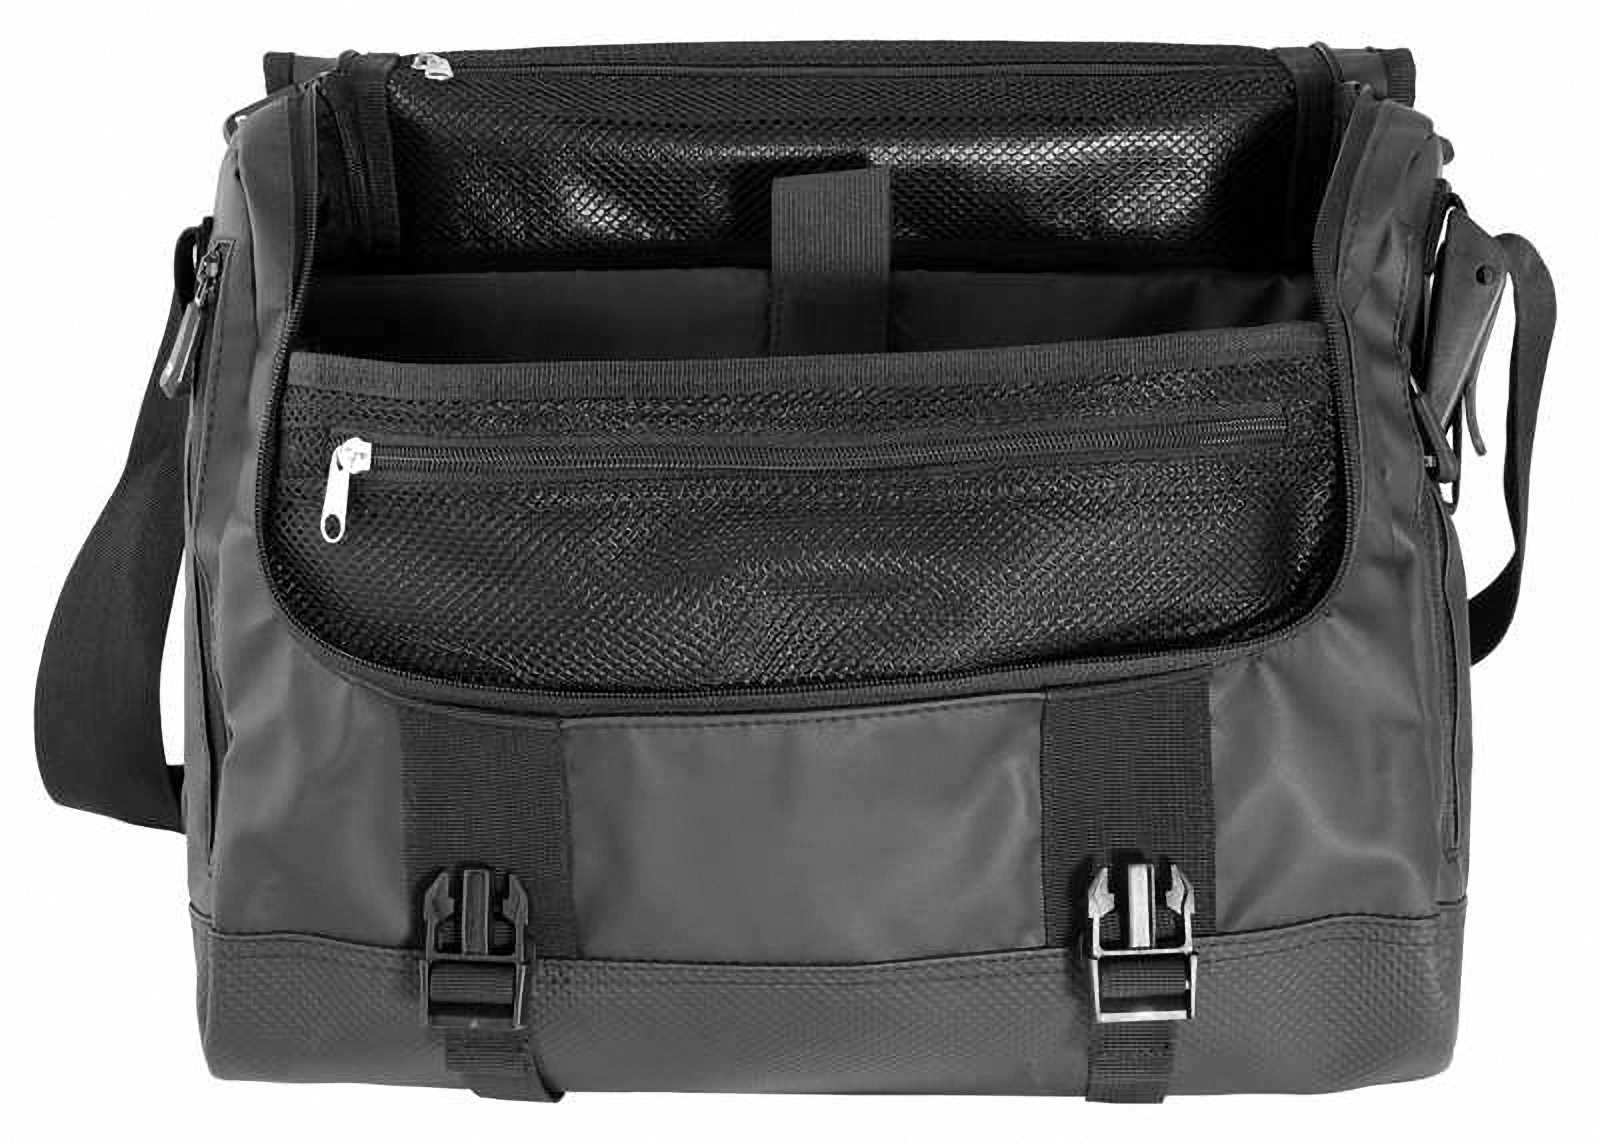 Водонепроницаемая сумка OverBoard OB1079BLK - Waterproof Adventure Messenger Bag. Фото 3